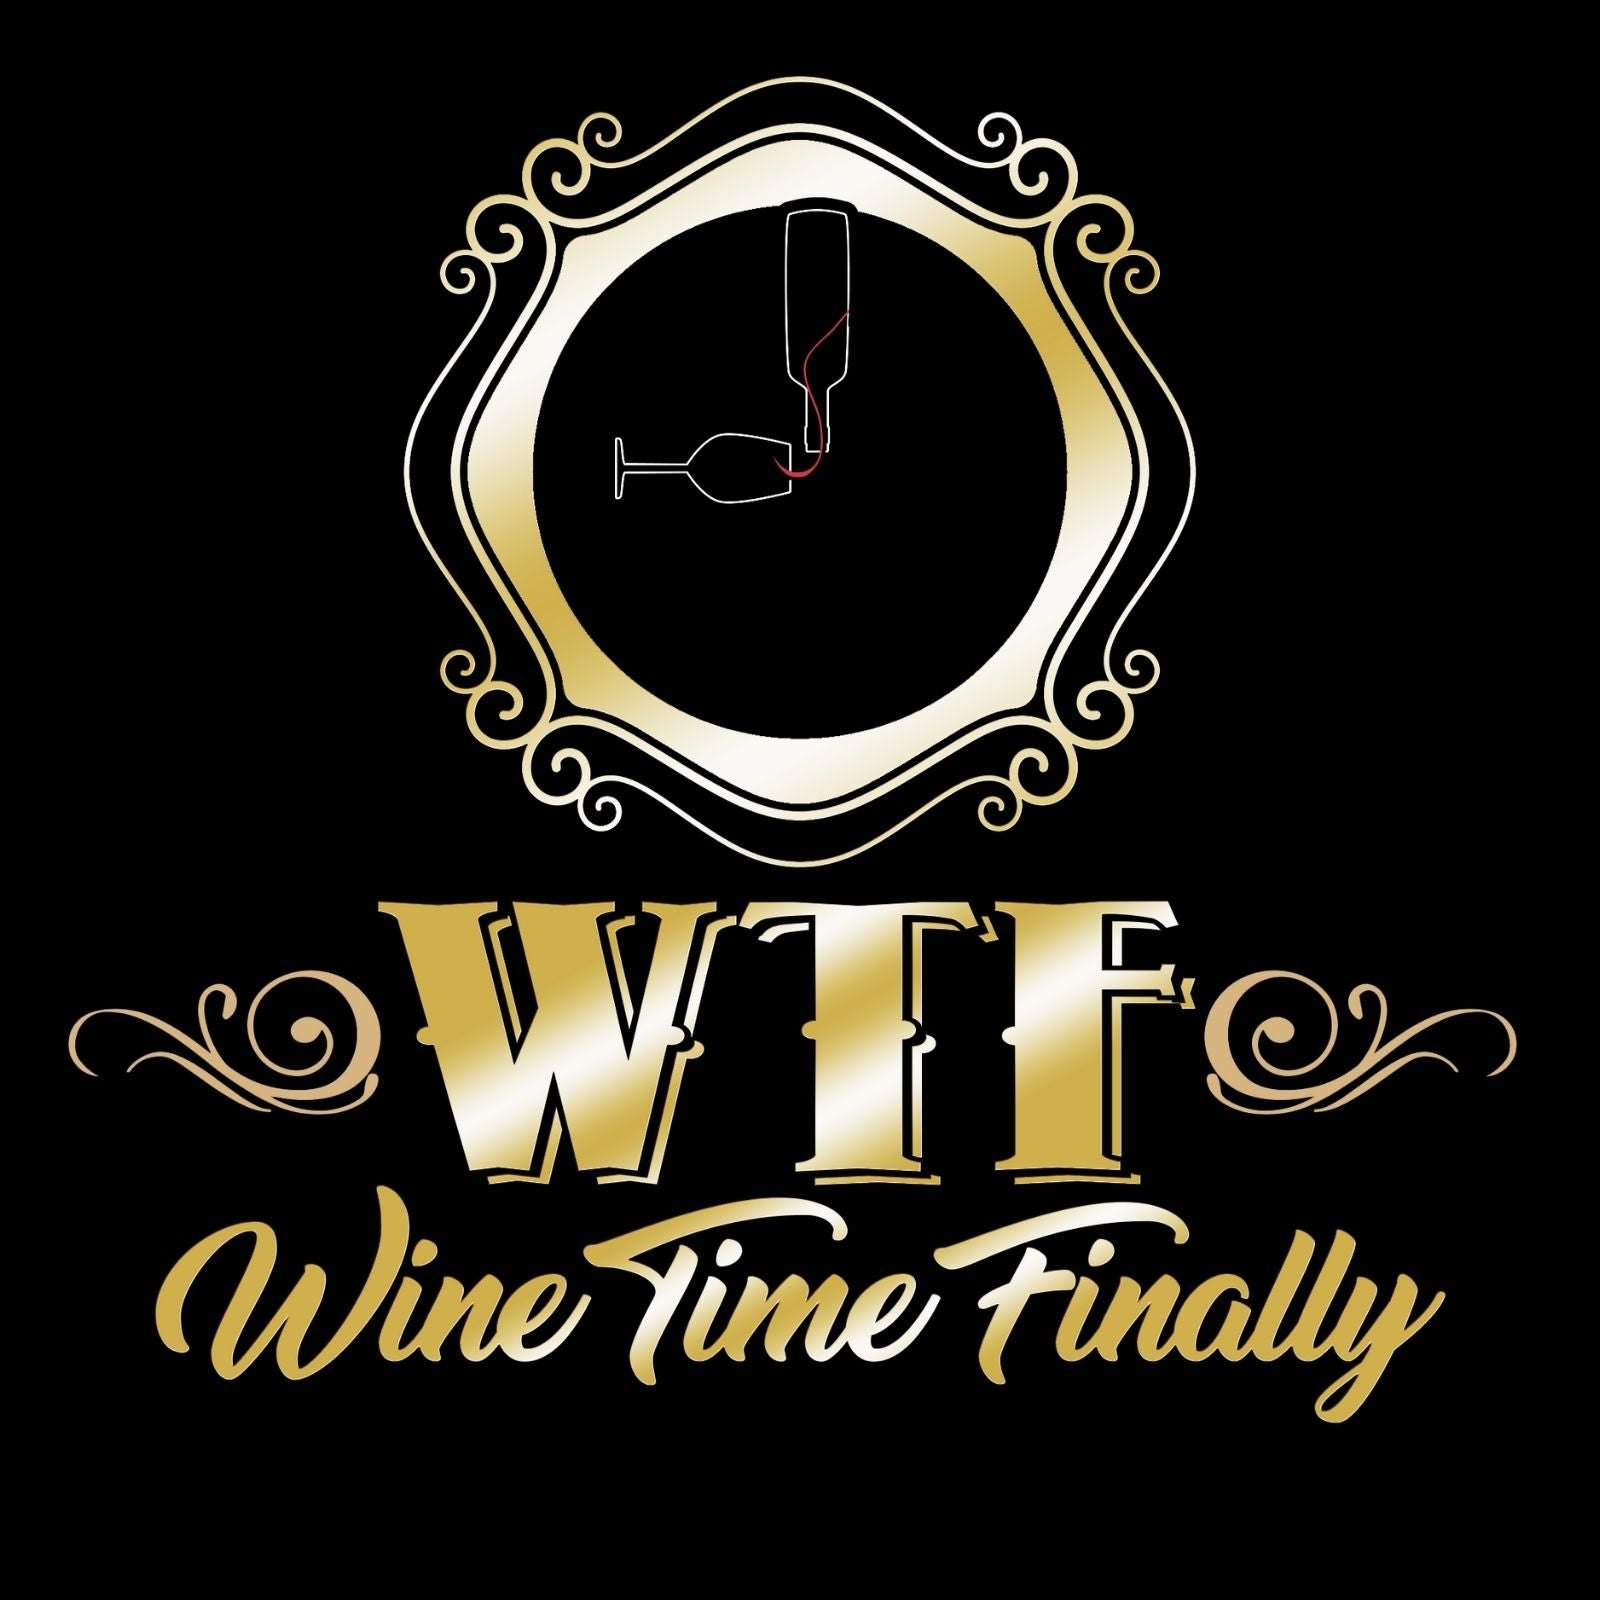 WTF Wine Time Finally - Bastard Graphics